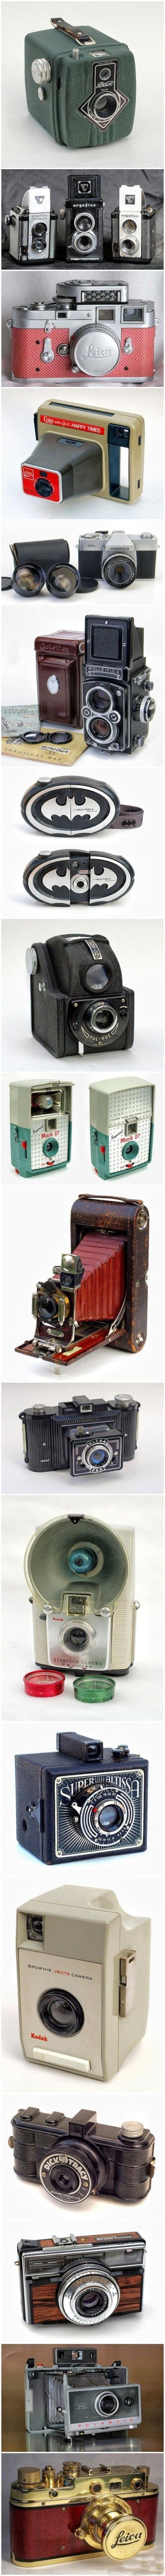 My Dad used to do photography for a hobby, he owned some of these & I still have one.